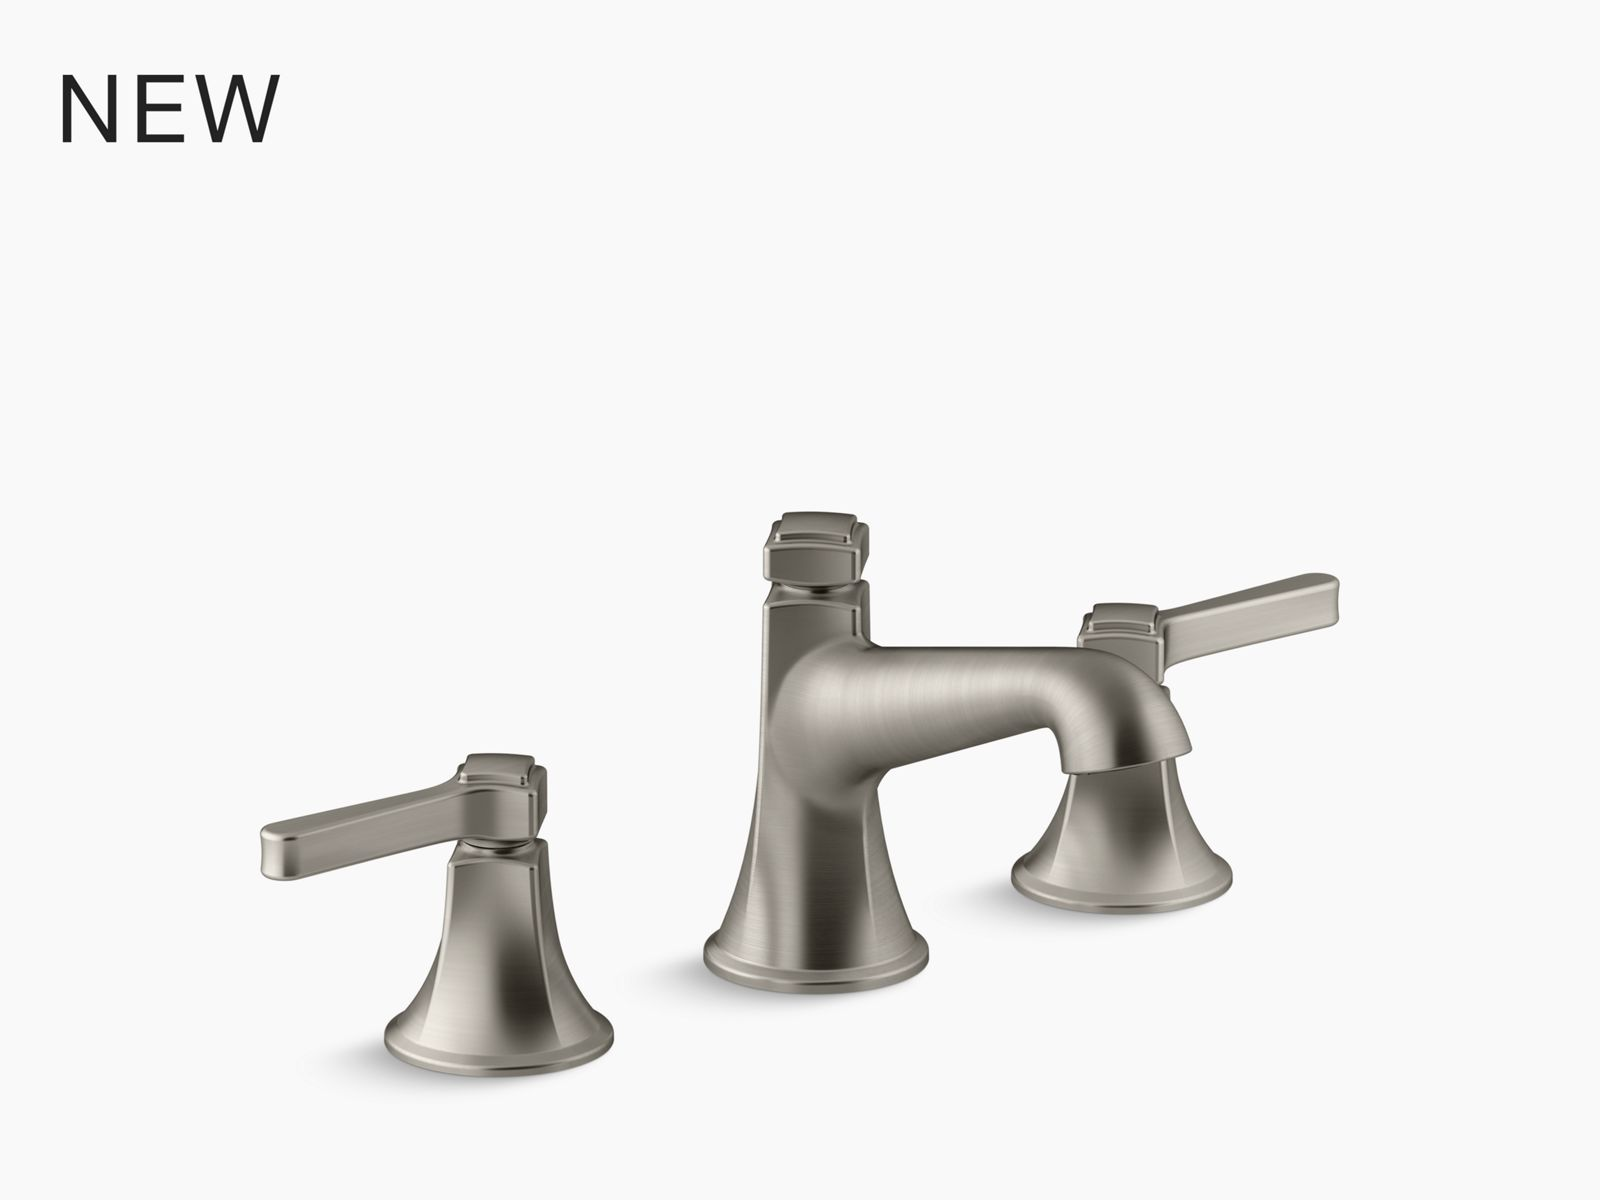 coralais single hole or three hole kitchen sink faucet with pull out matching color sprayhead 9 spout reach and lever handle